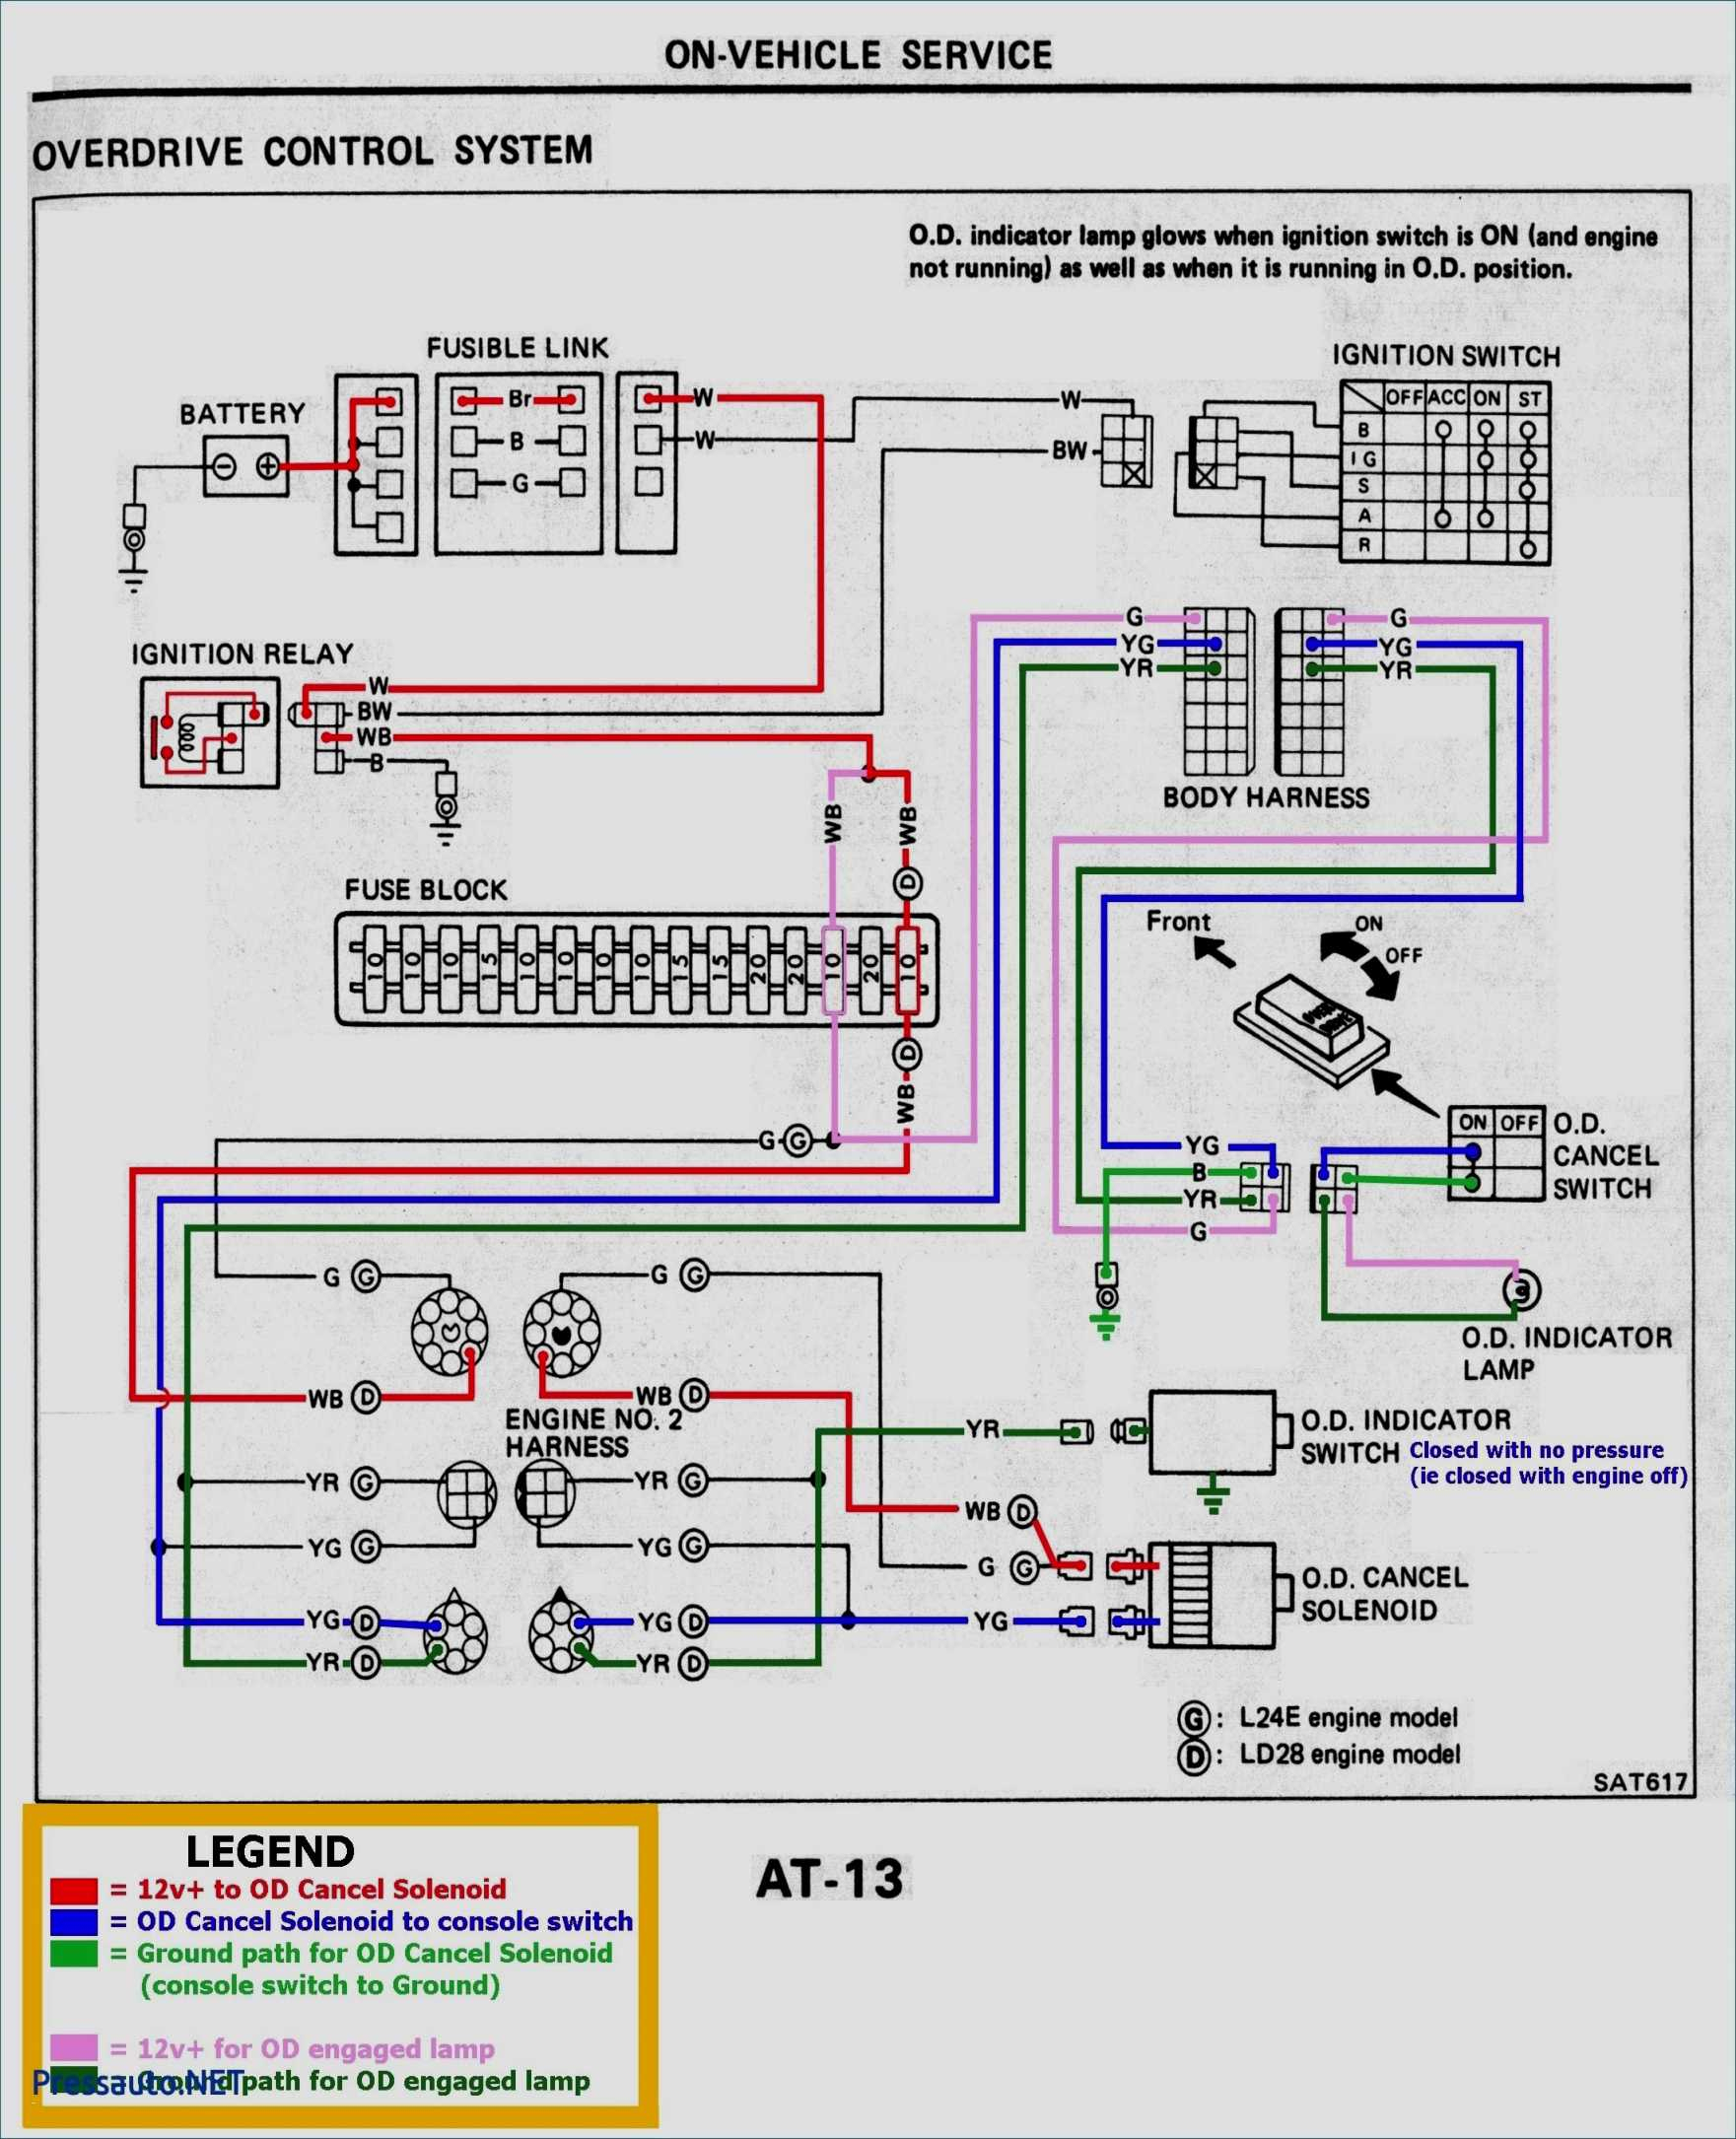 Andco Eagle Actuator Wiring Diagram | Wiring Diagram - Pocket Bike Wiring Diagram